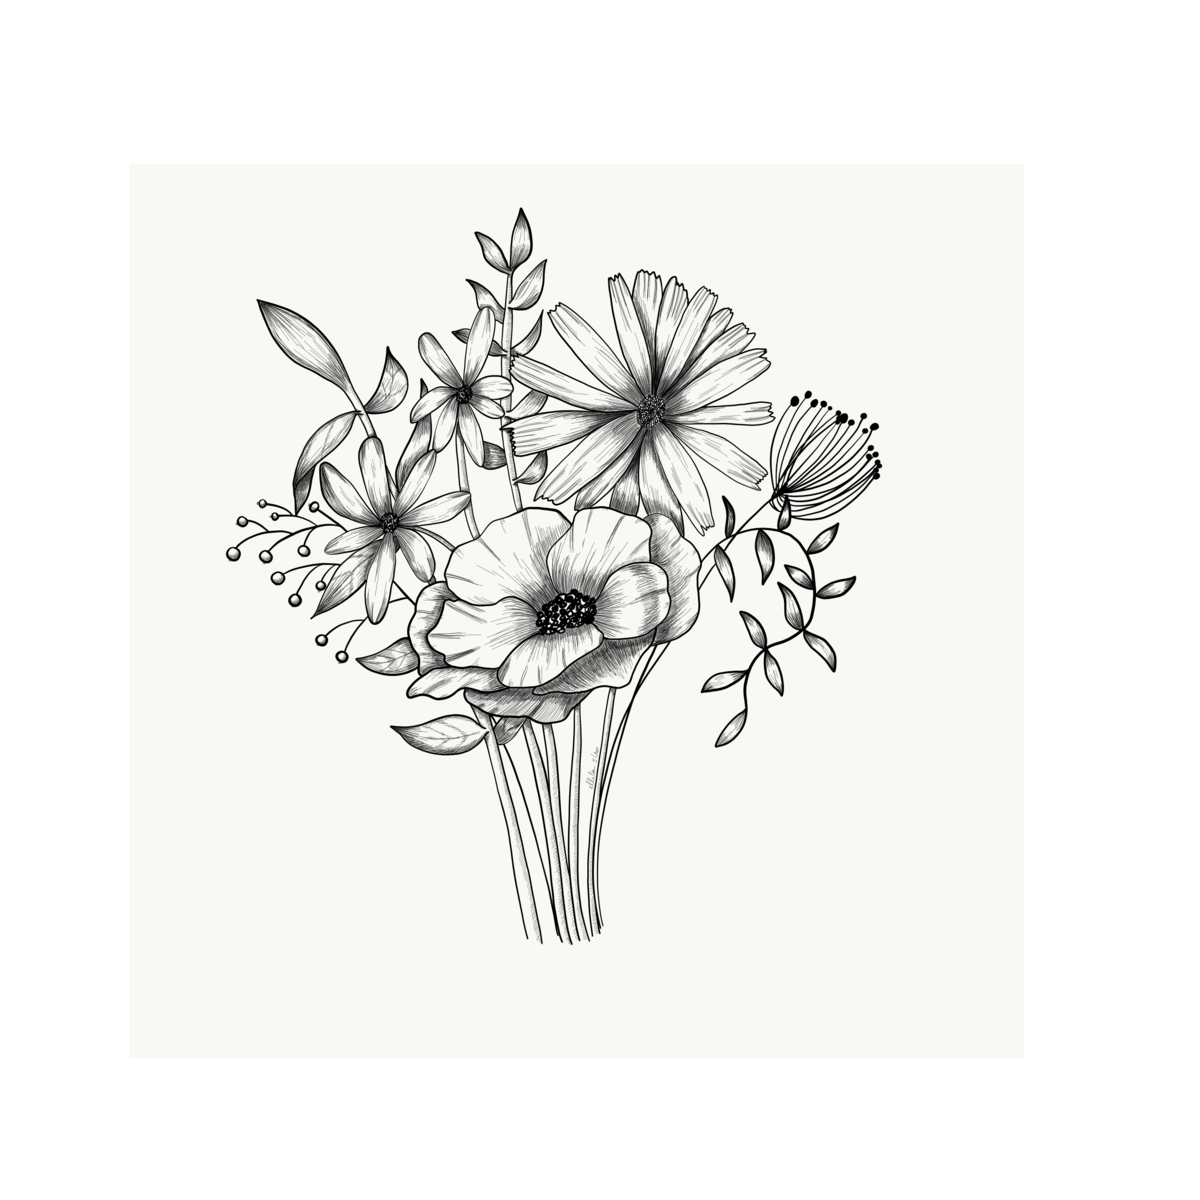 bouquet illustration ellila designs